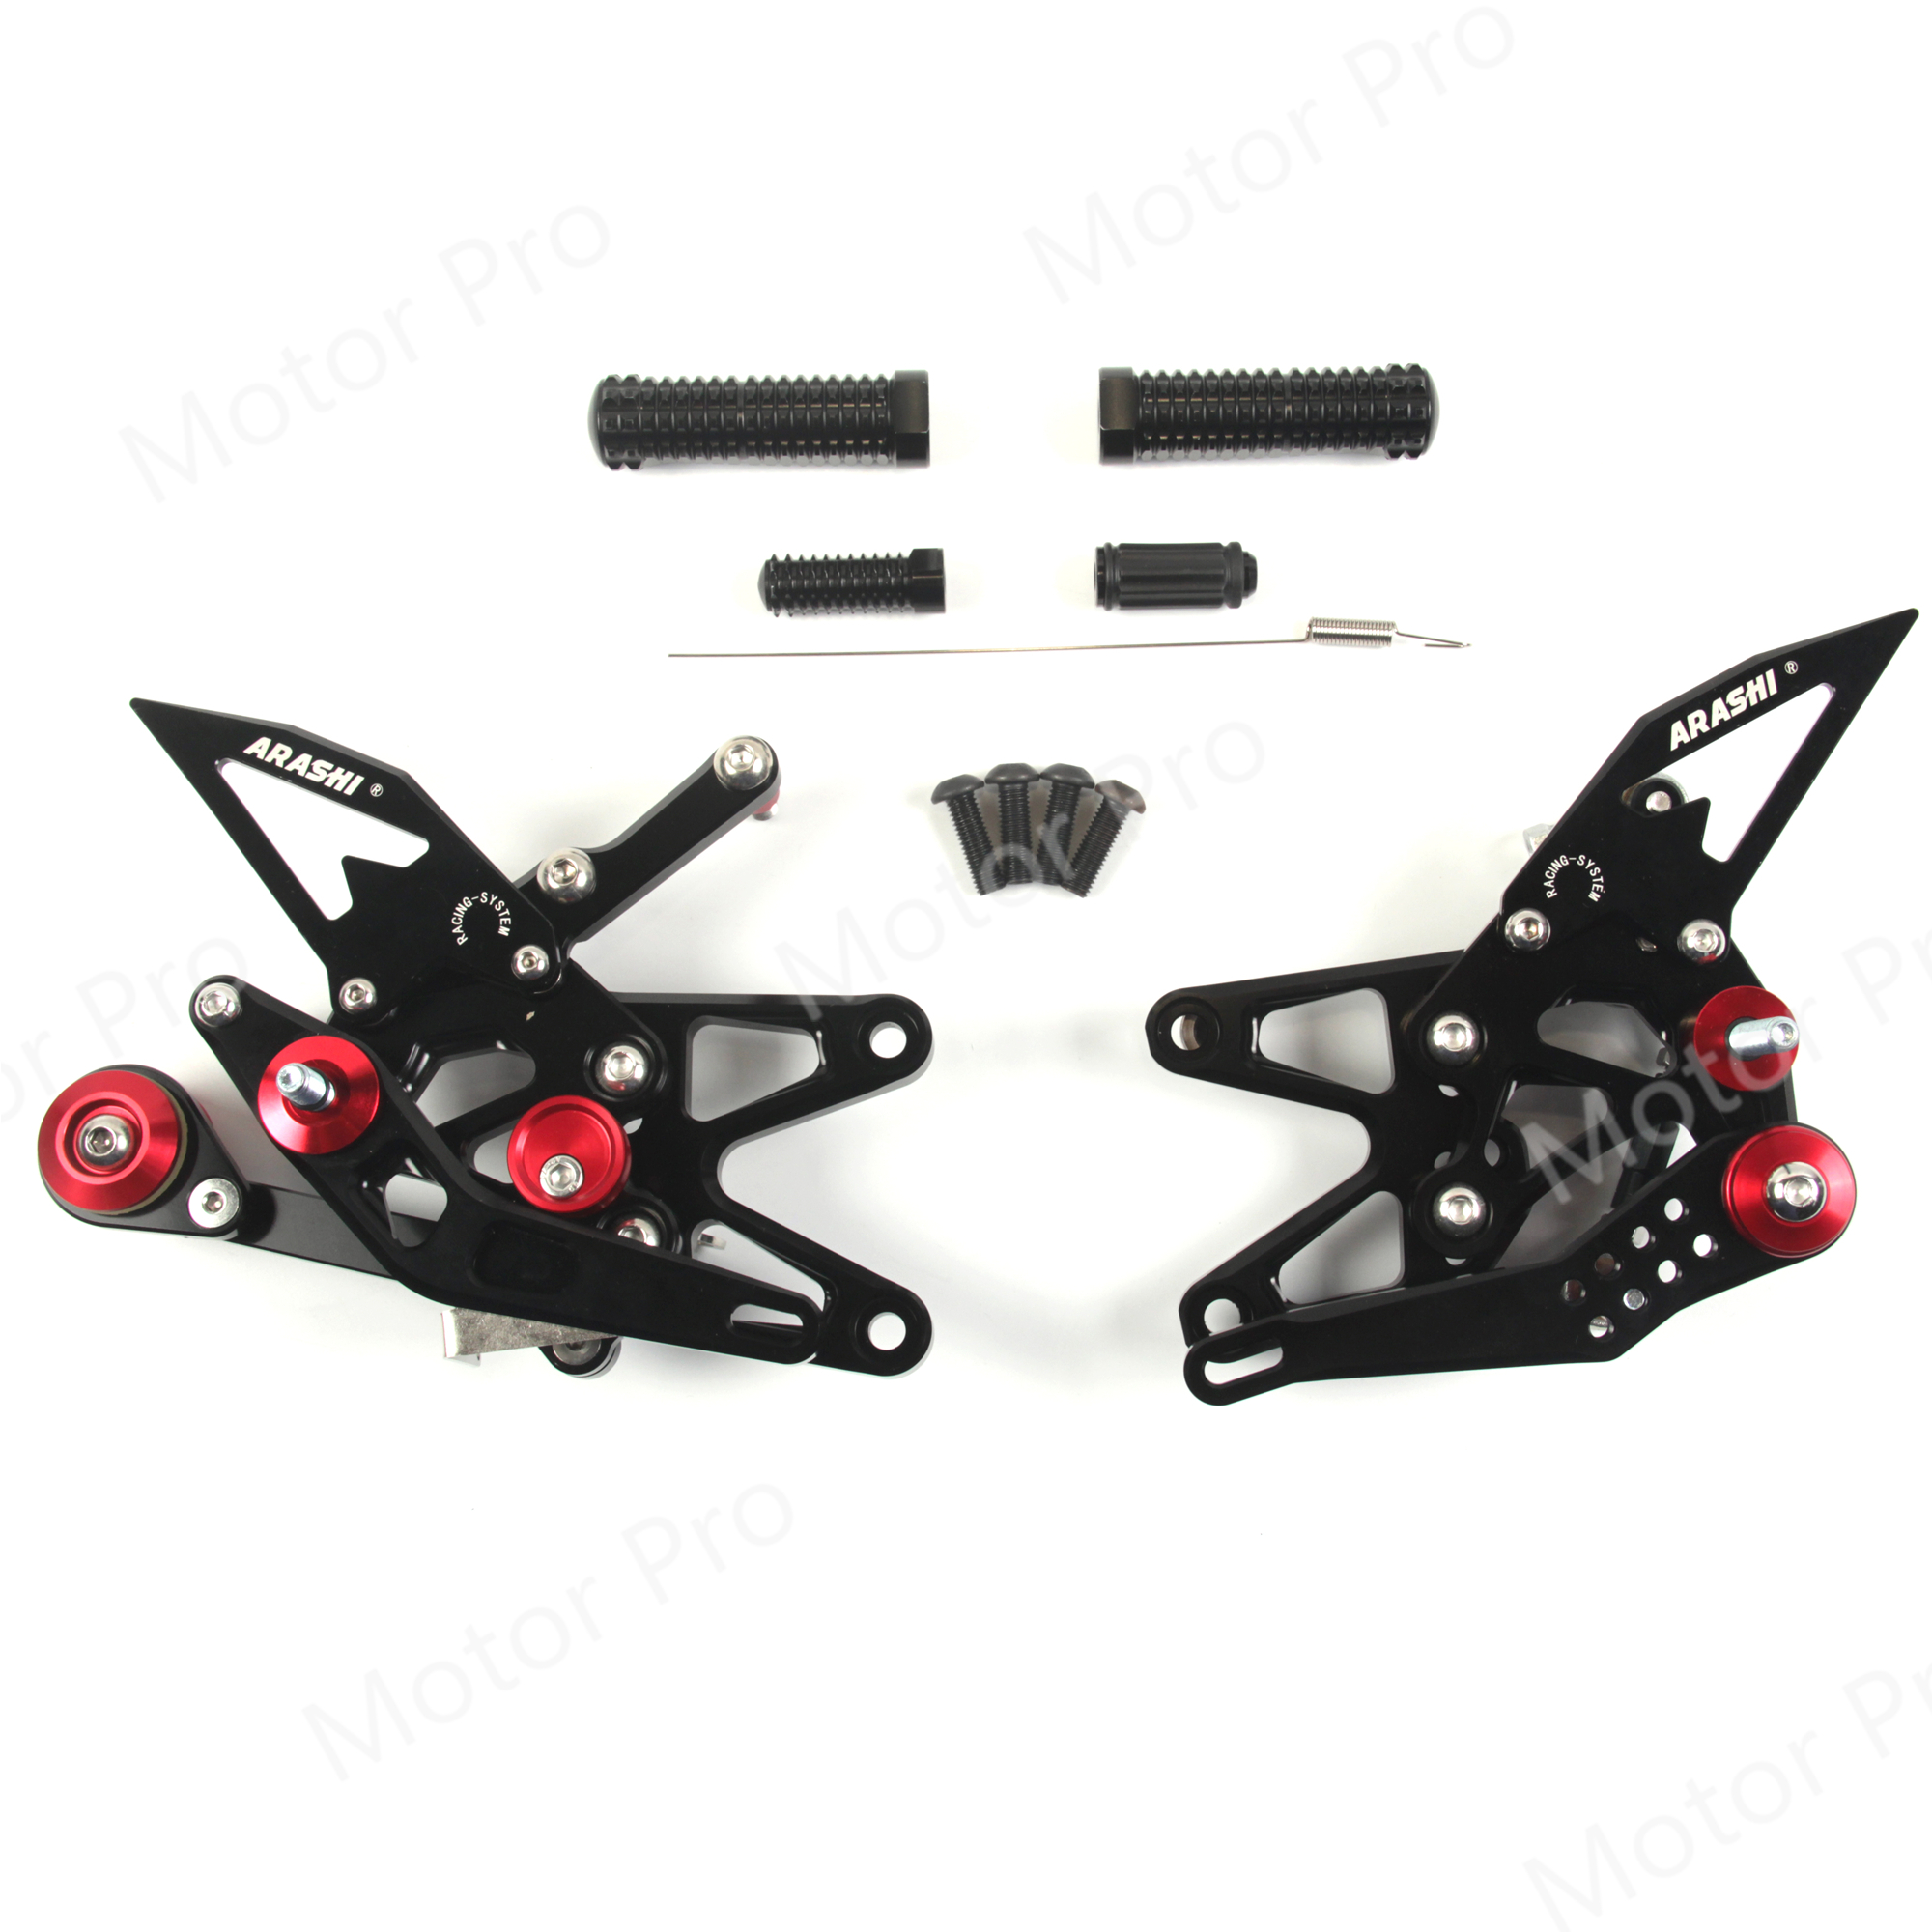 Adjustable Footrests For Triumph DAYTONA 675R 2013 - 2018 Motorcycle Accessories Foot Peg Pedal Rearsets 675 R 2015 2016 2017